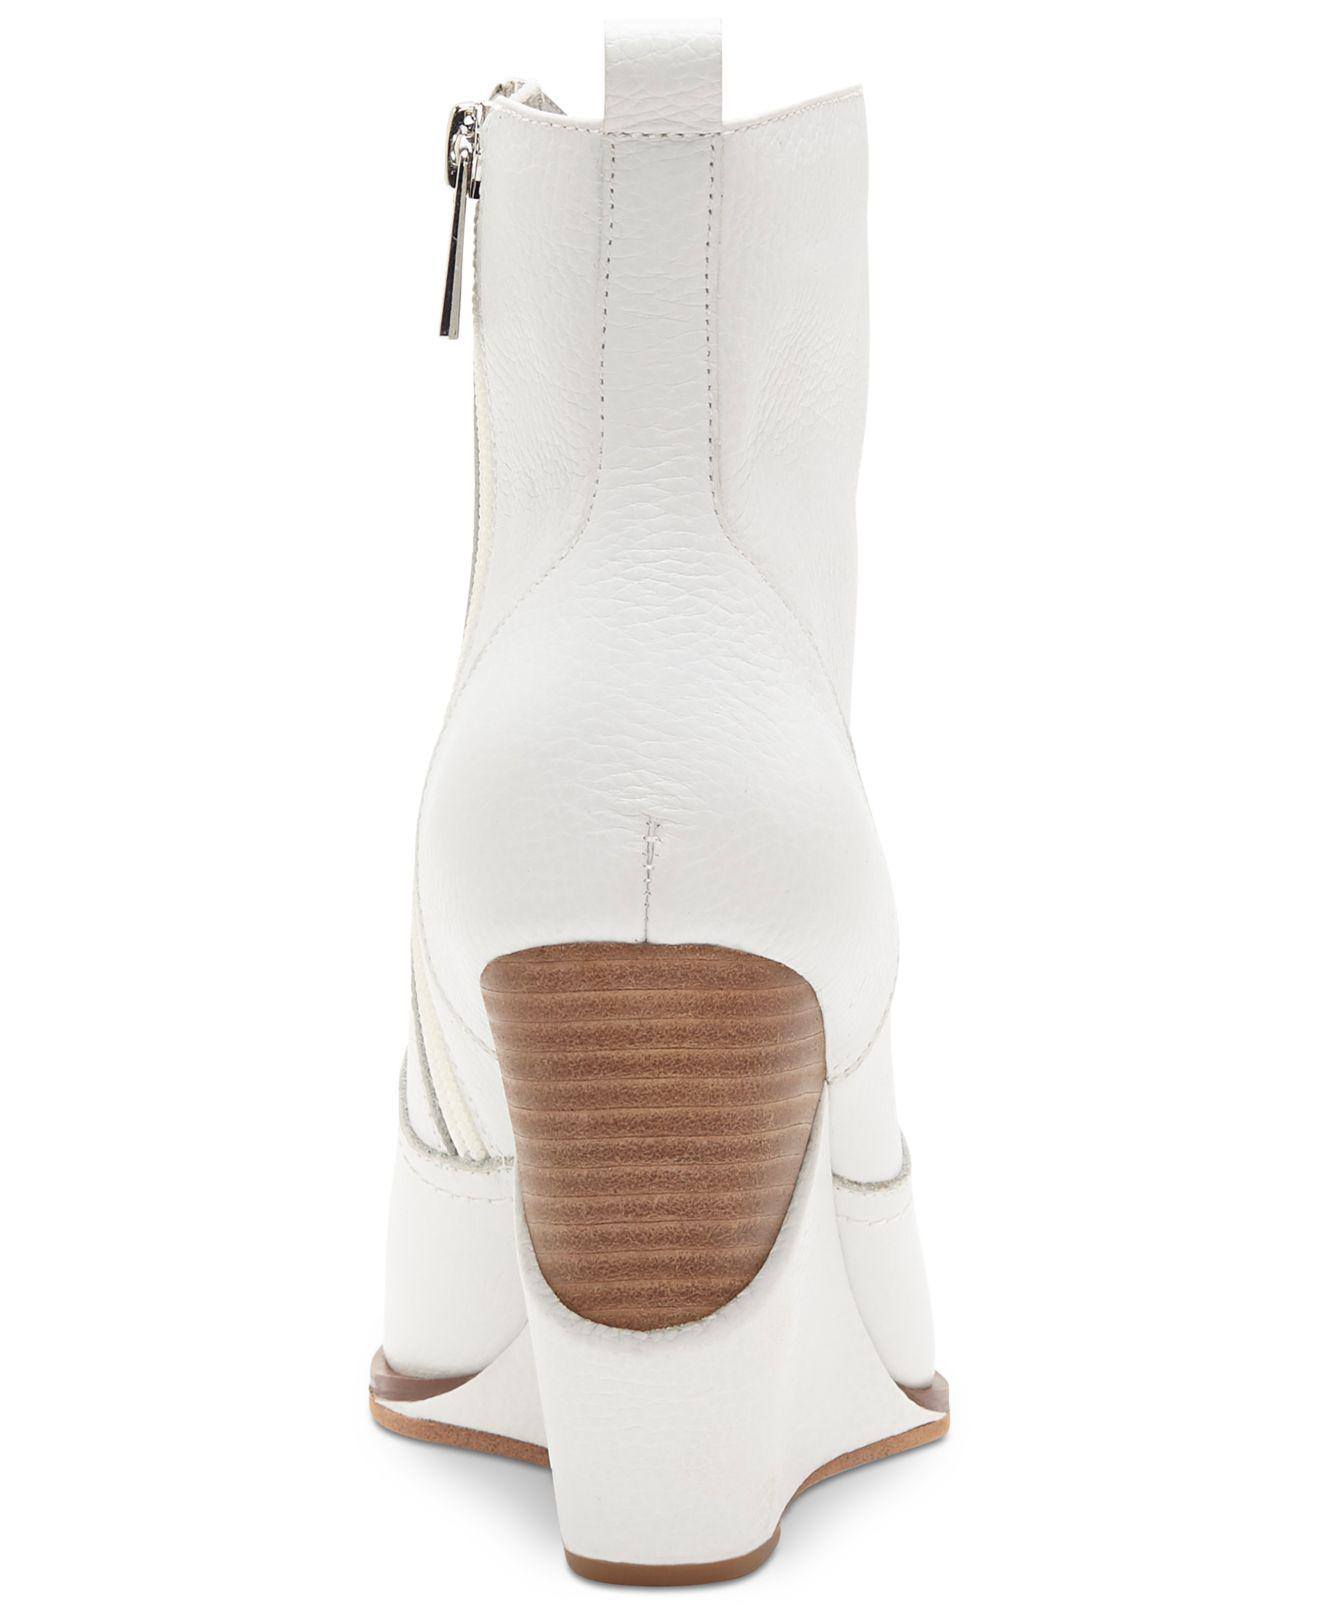 80a5177b6c2d73 Lyst - Jessica Simpson Hilrie Western Booties in White